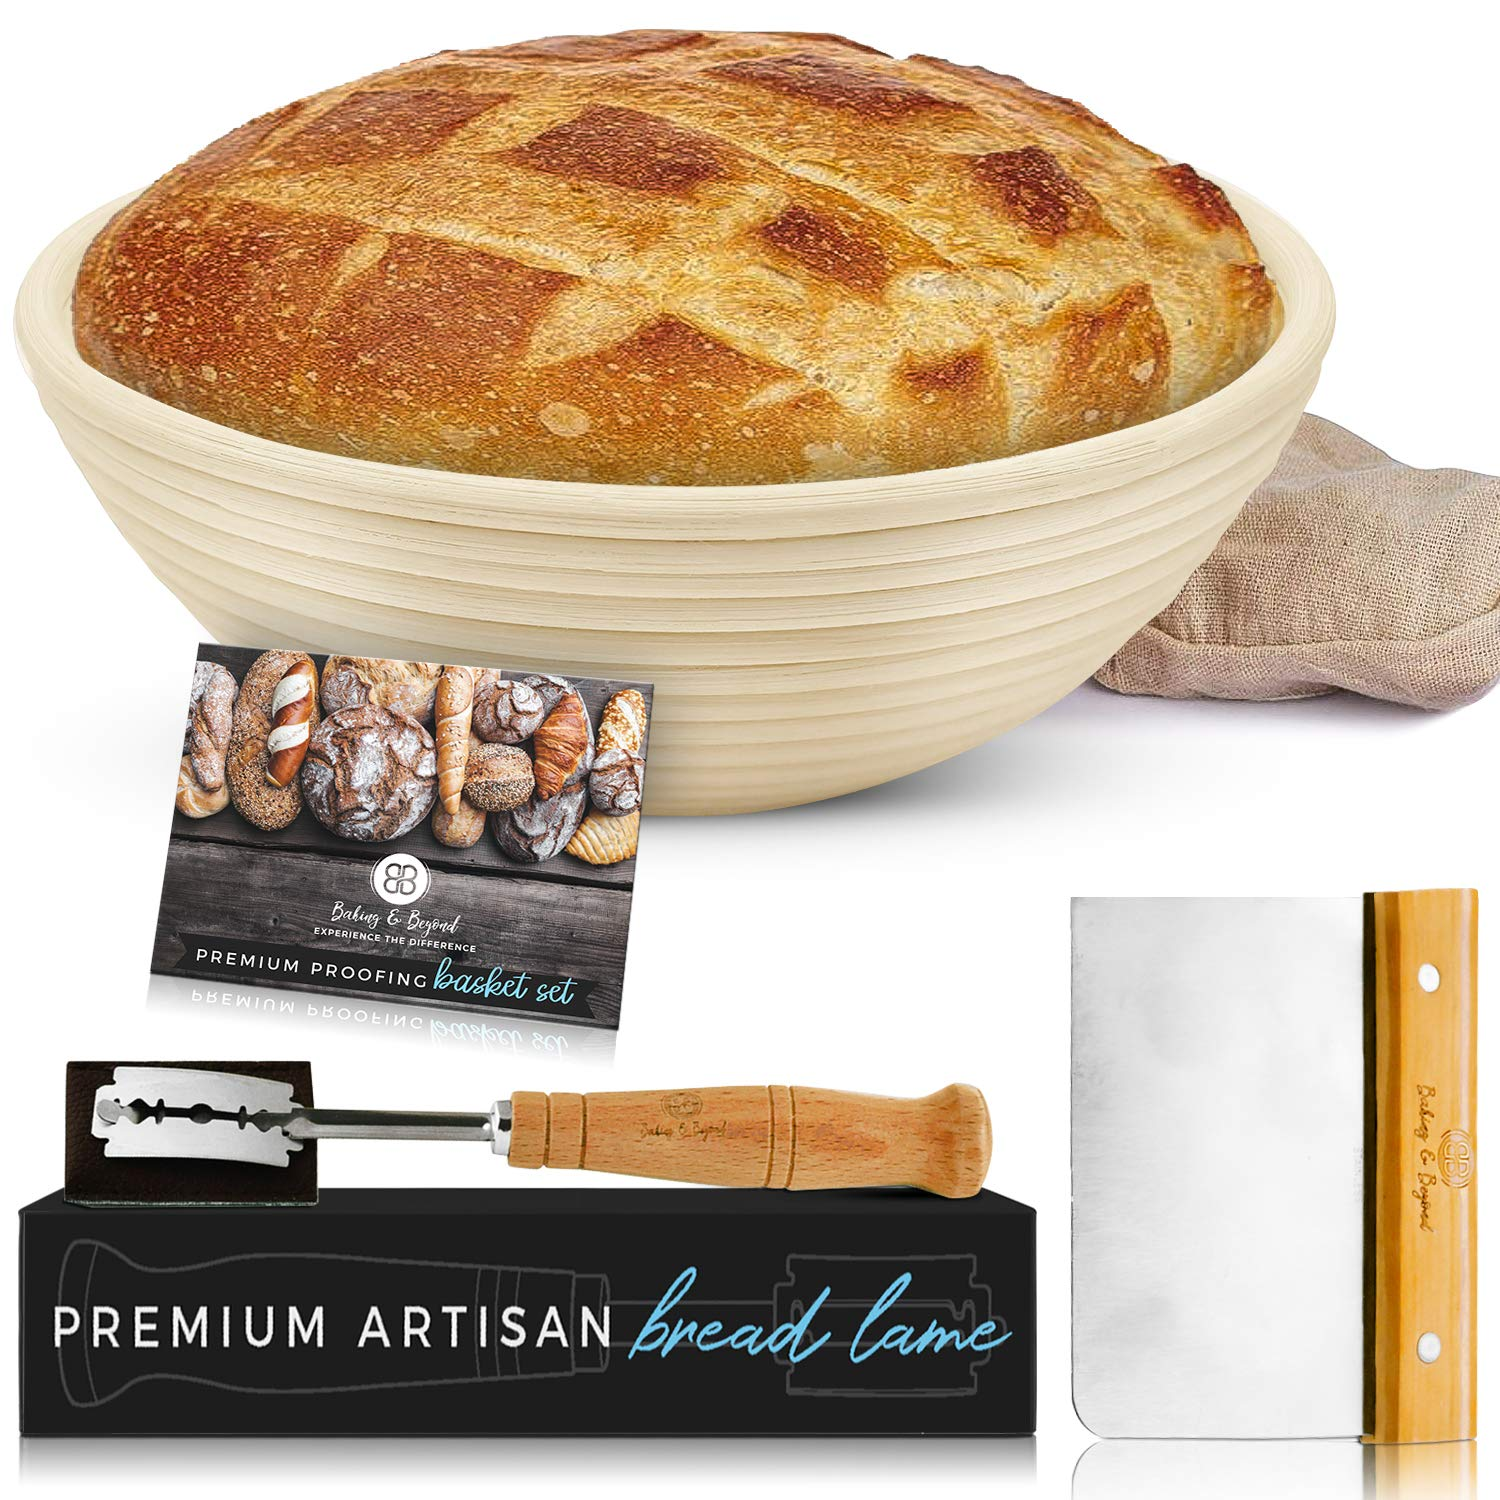 Baking & Beyond Banneton Proofing Basket (9 inch) Bundle with Brotform Linen Liner, Dough Scraper, Scoring Lame & 5 Blades - Sourdough Starter Kit for Artisan Bread Baking - A Novel Bakers Gift by BB BAKING & BEYOND